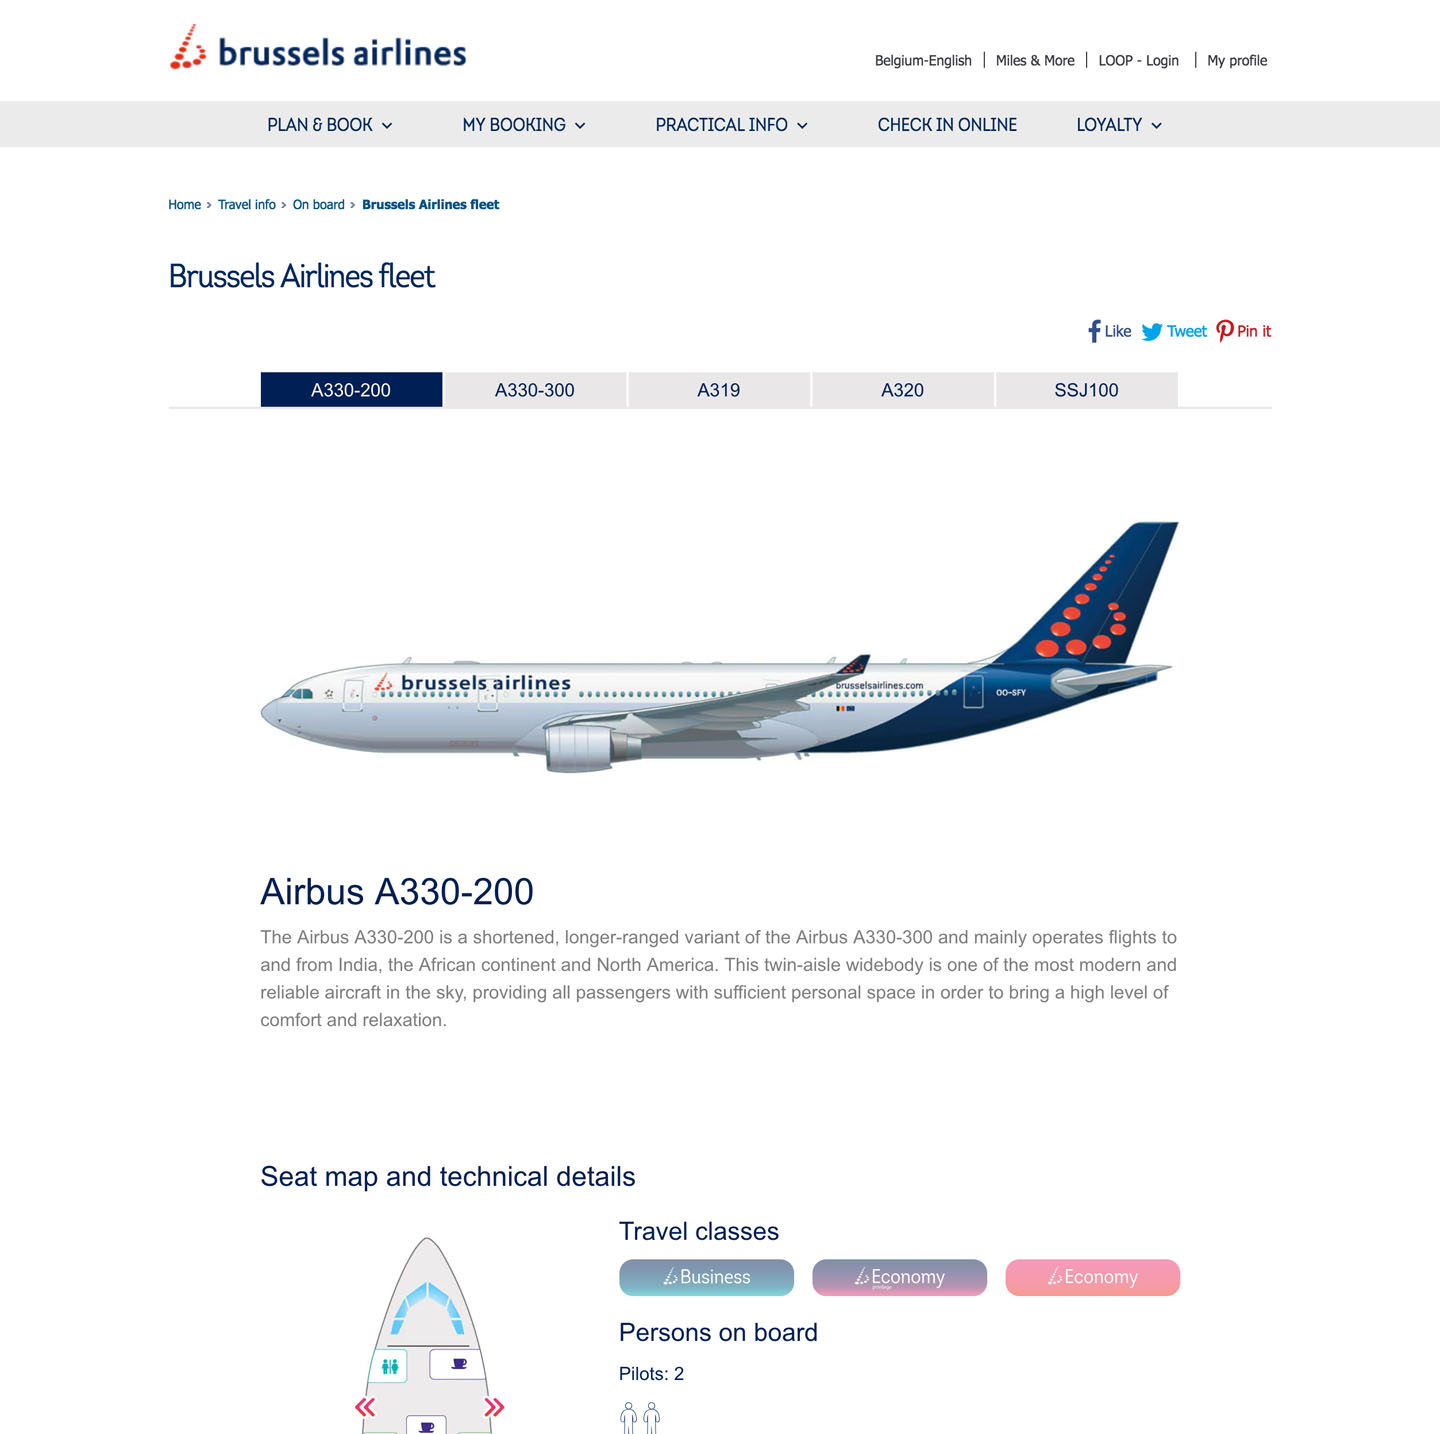 Brussels Airlines fleet pages (development of website)